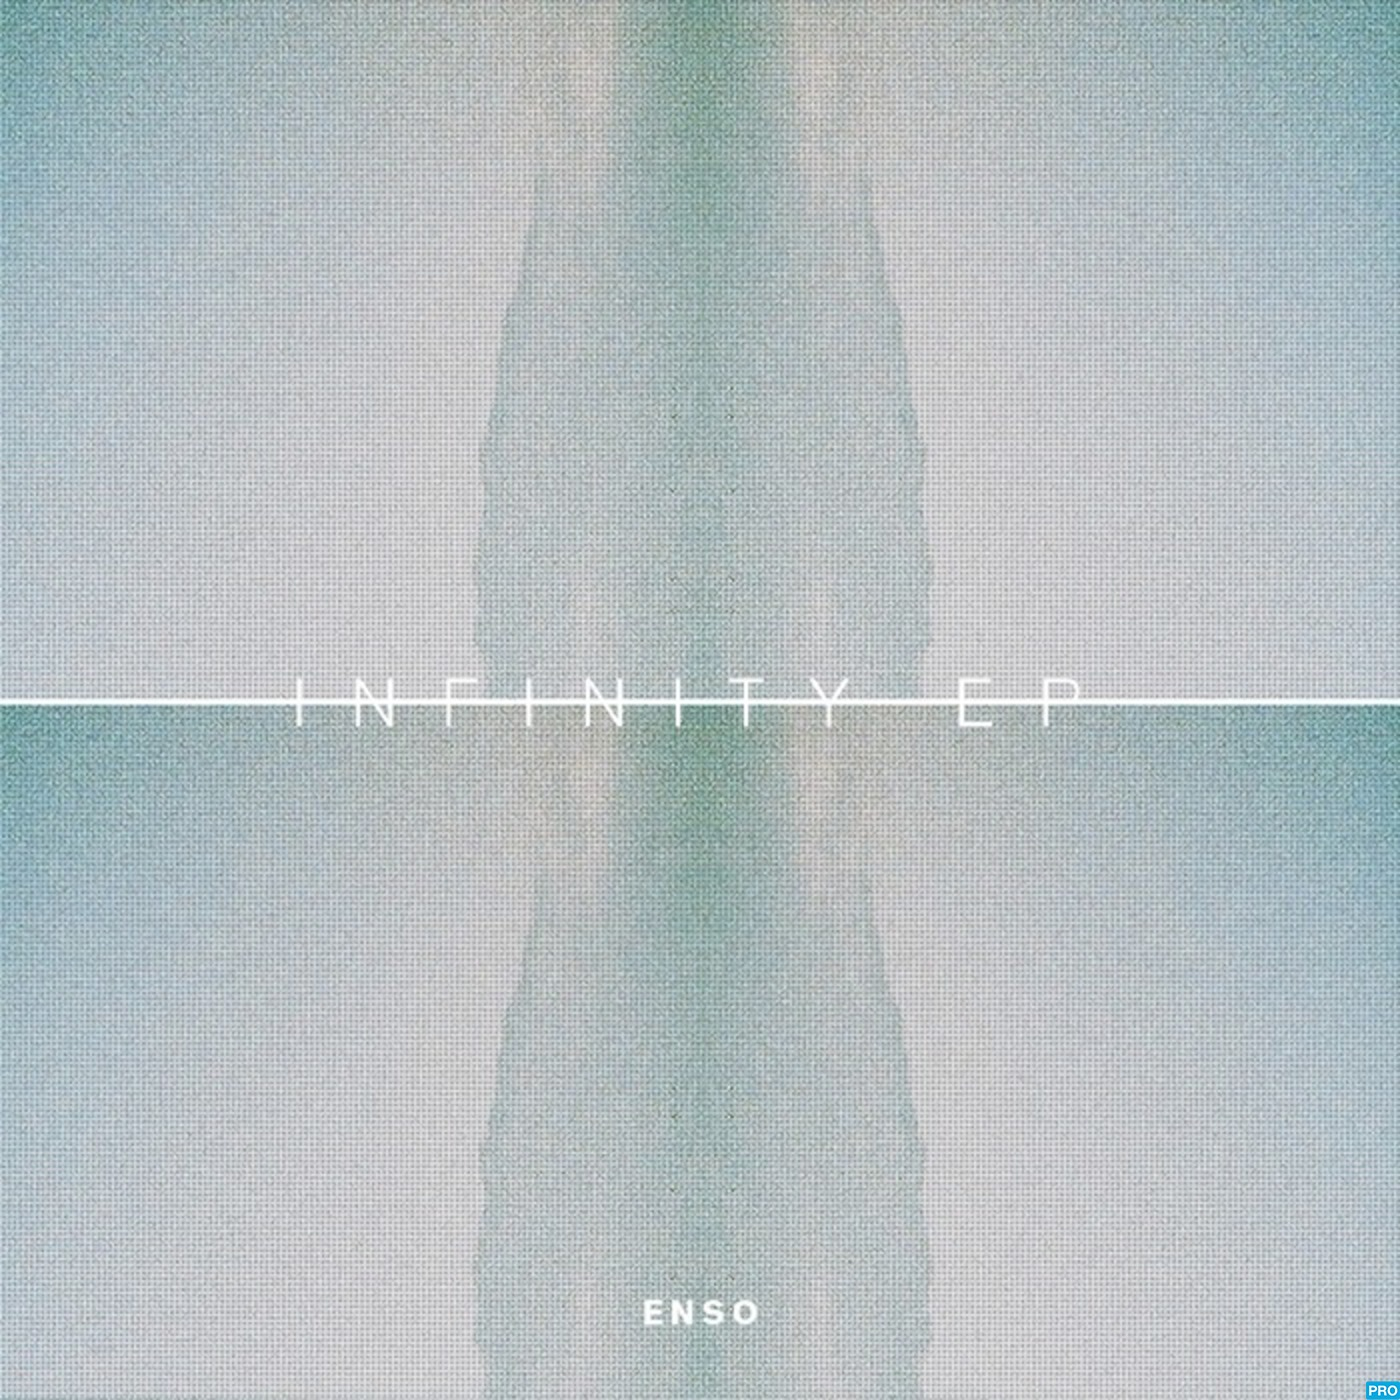 Enso - Symmetry Mix